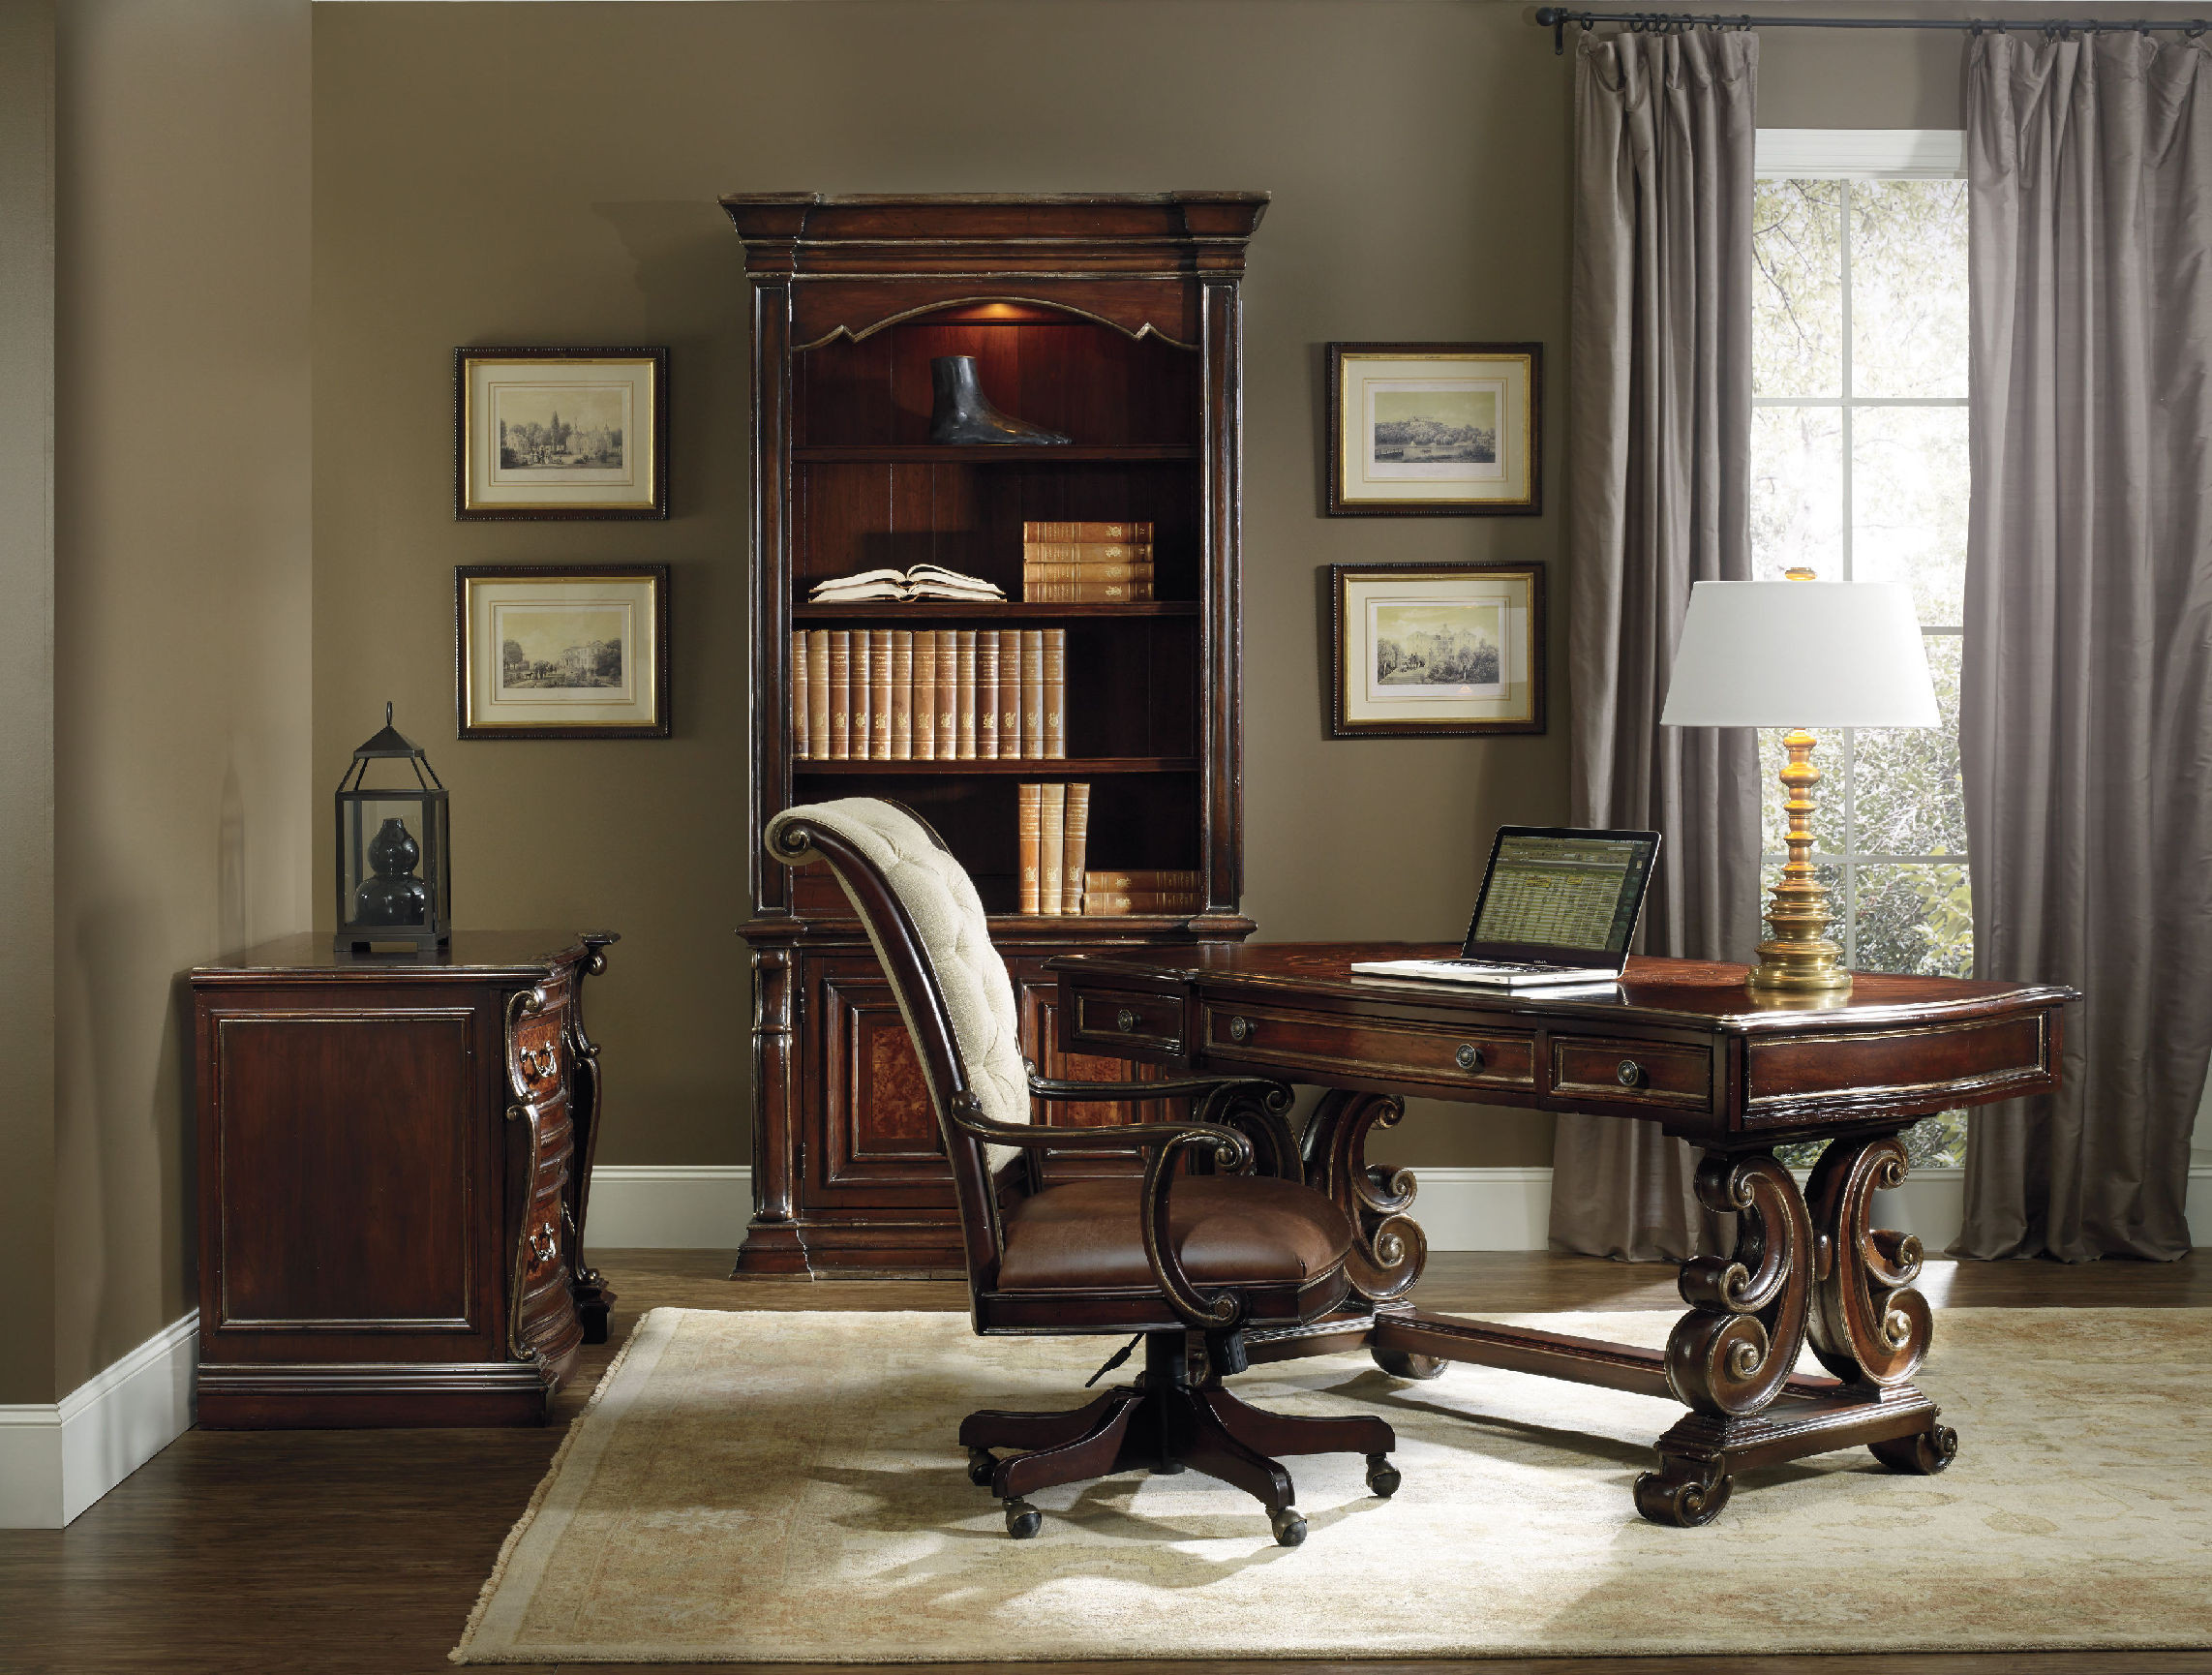 Best ideas about Hooker Office Furniture . Save or Pin Grand Palais Writing Desk 66 in 5272 Now.